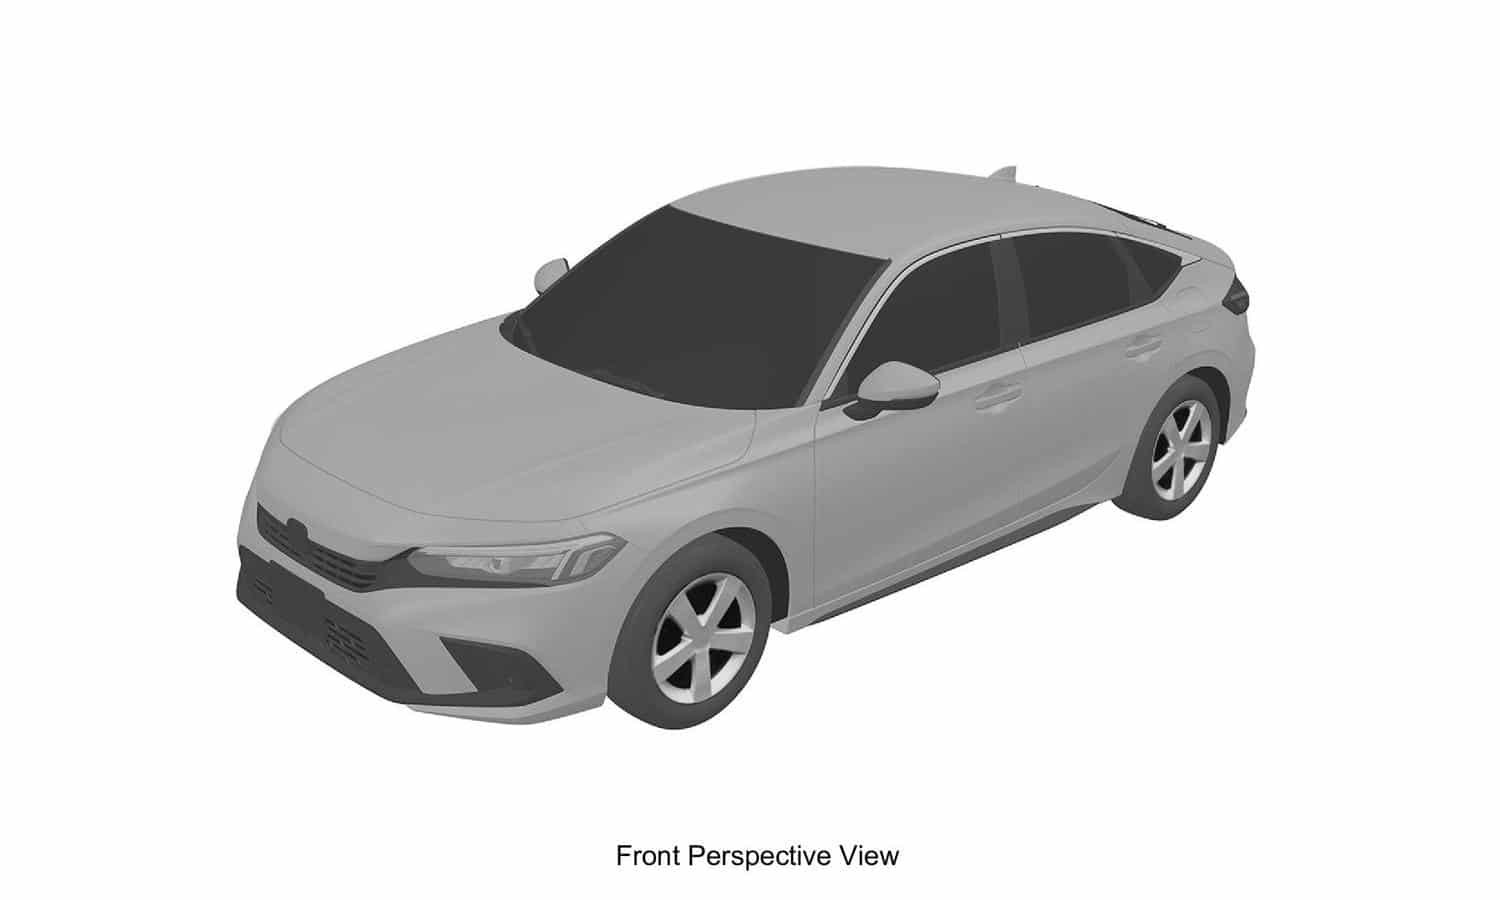 Honda Civic Hatchback 11th Gen 2022 patent